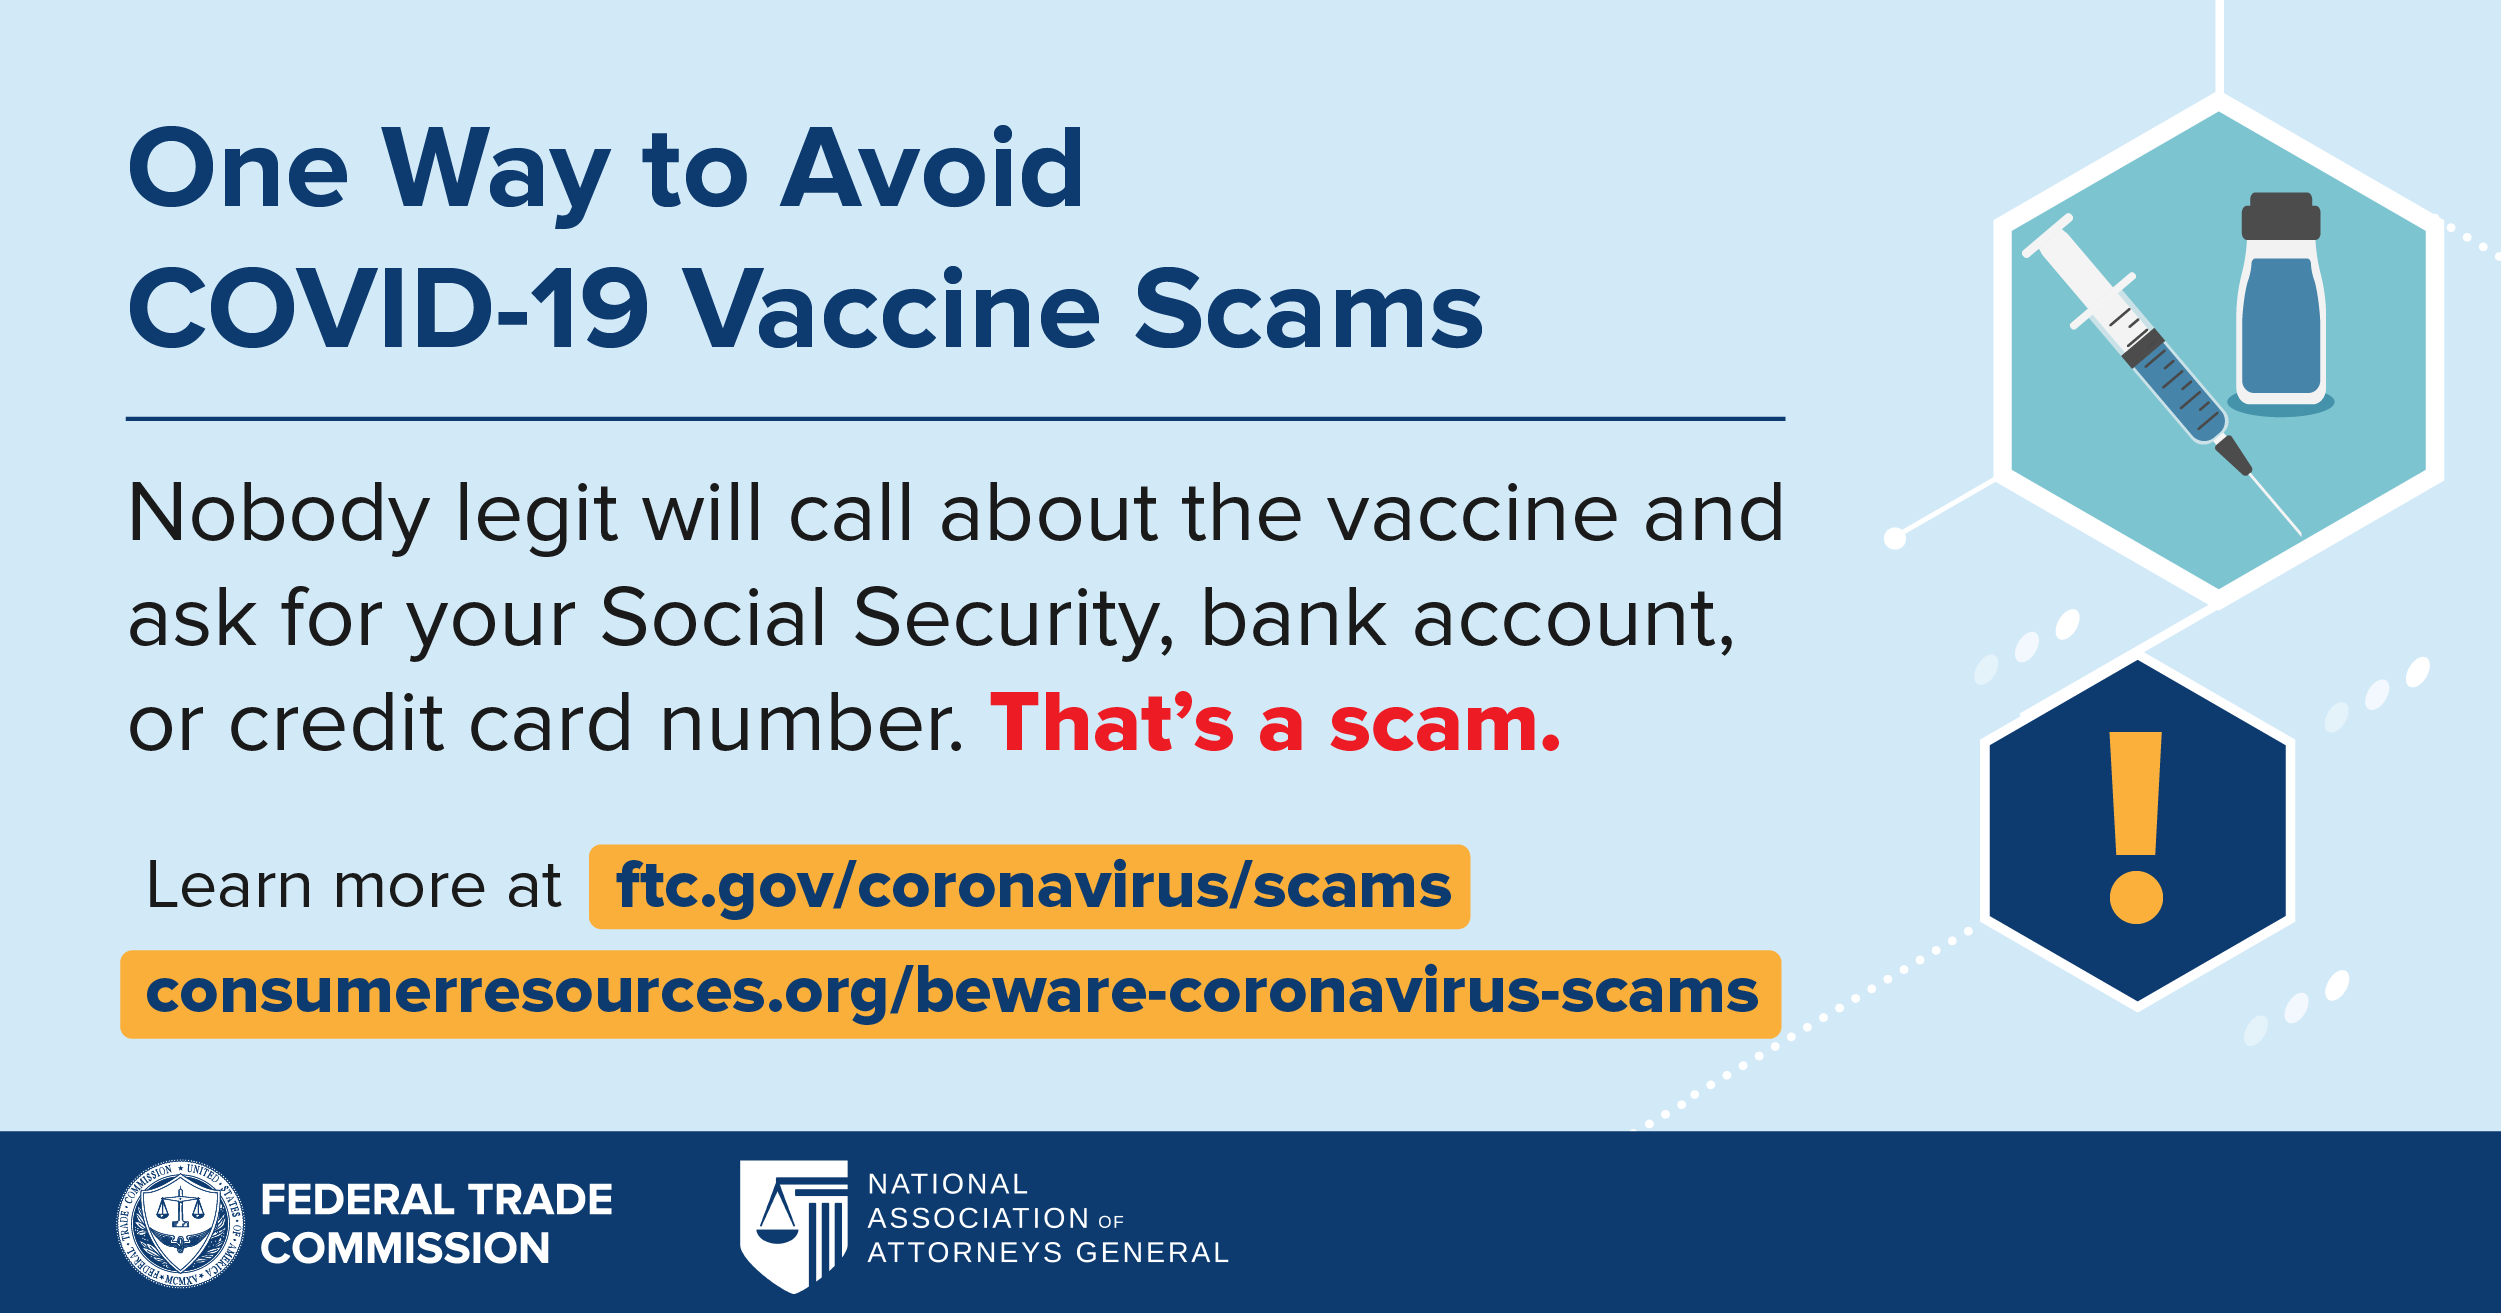 Learn about Coronavirus Scams at ftc.gov/coronavirus